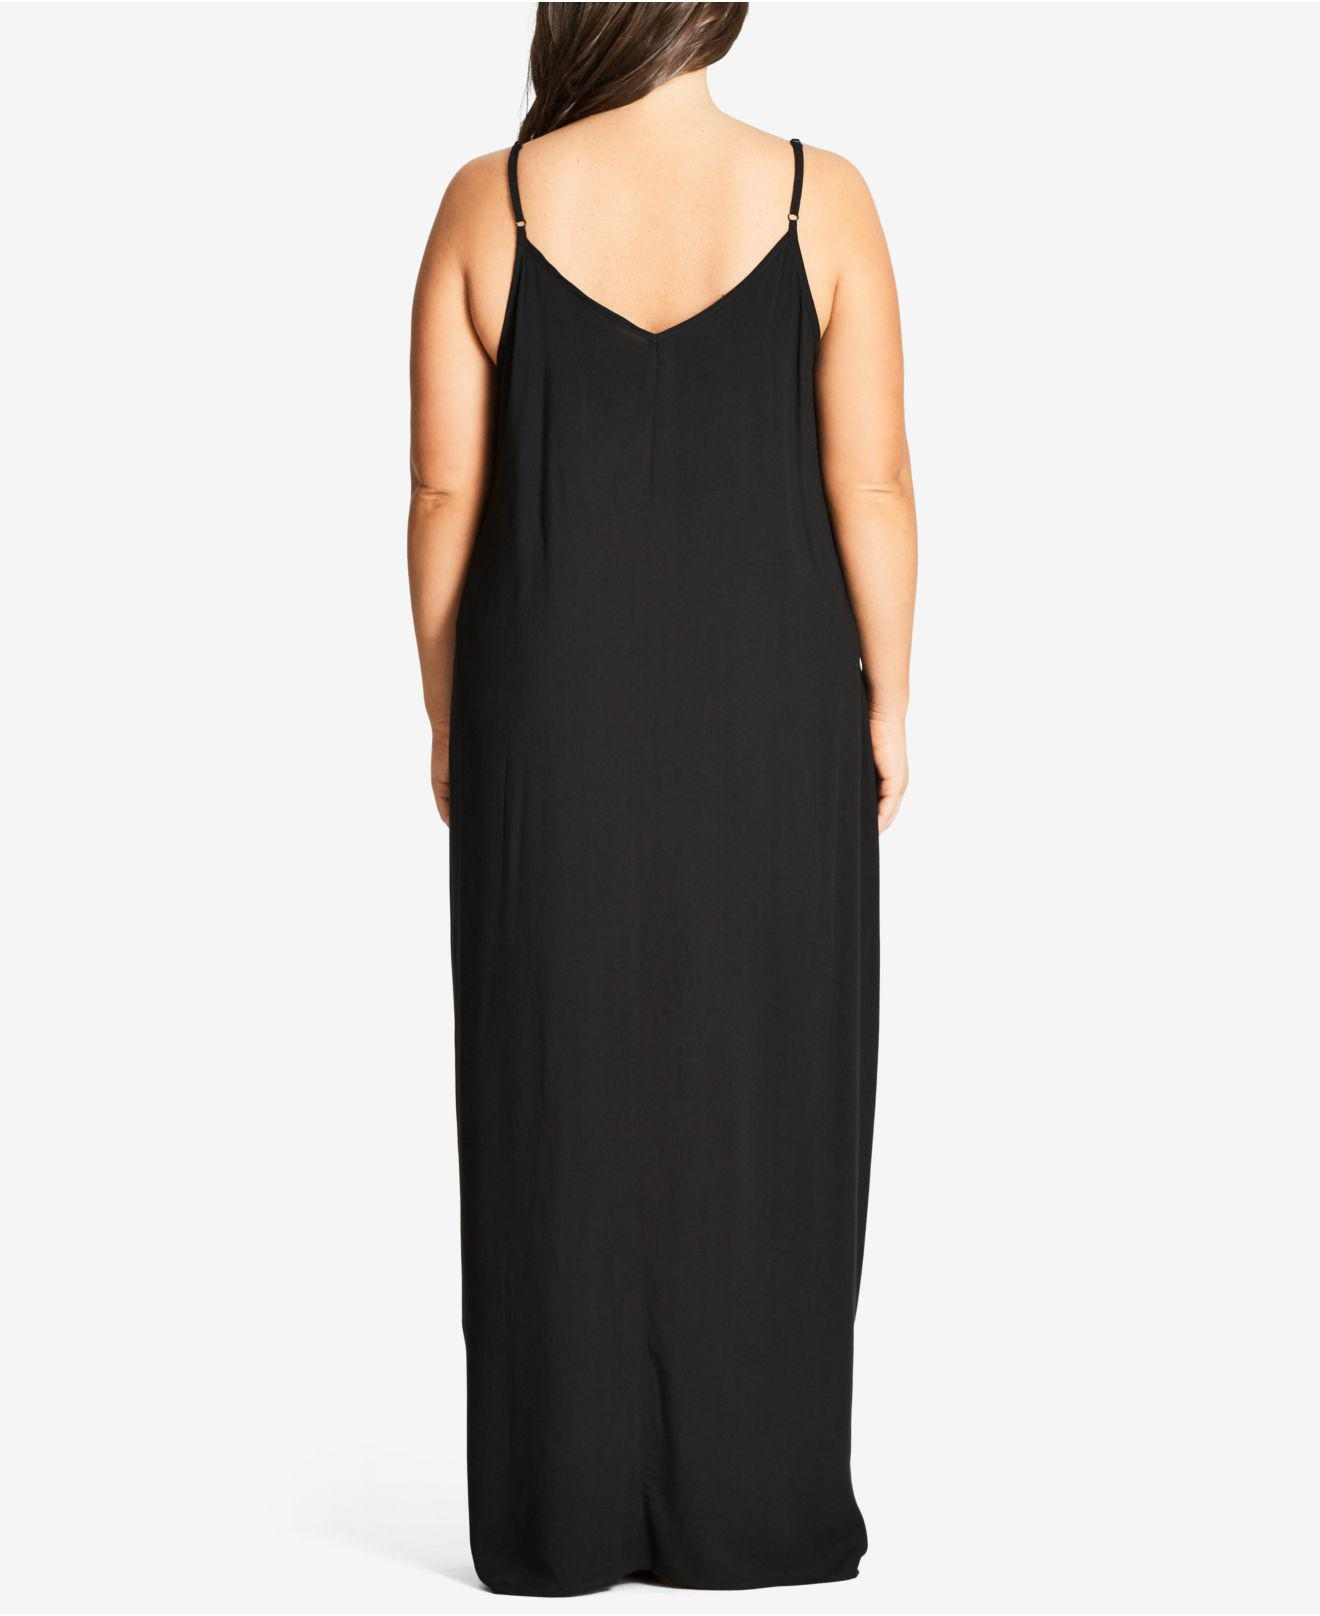 9740df5ae9 Lyst - City Chic V-neck Maxi Dress in Black - Save 51%